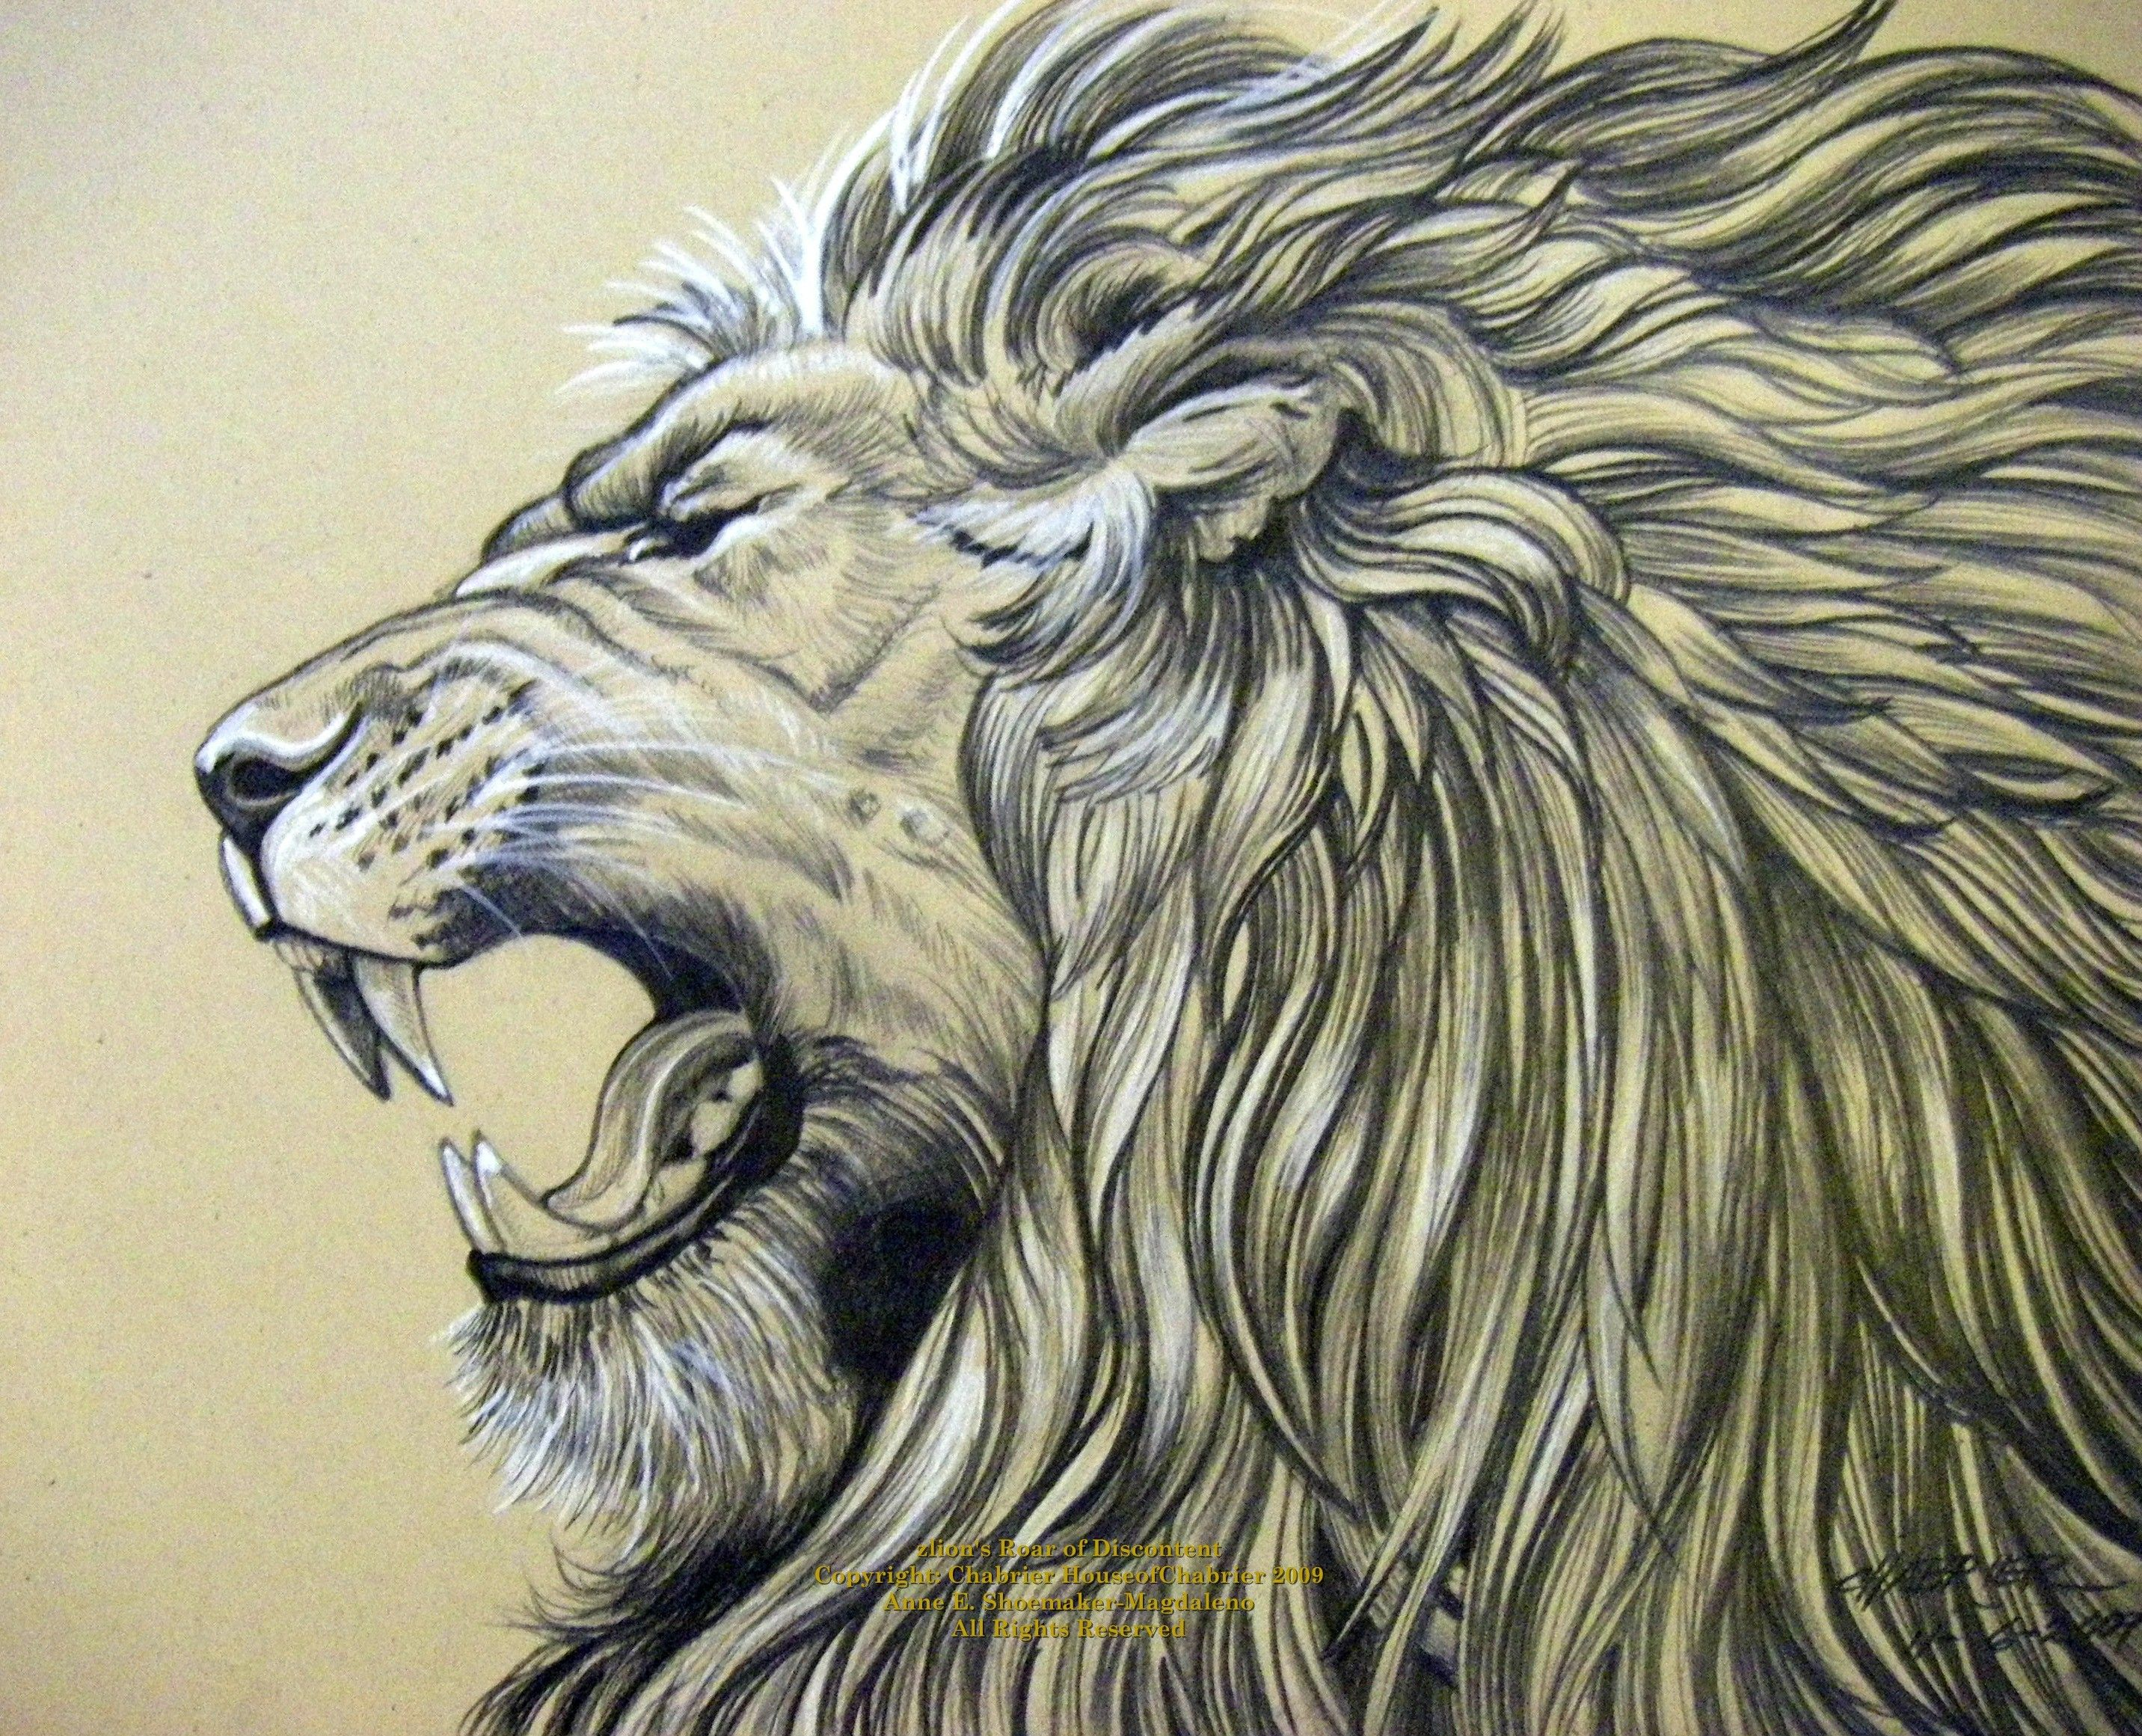 image.jpg (2864×2321) Lion tattoo design